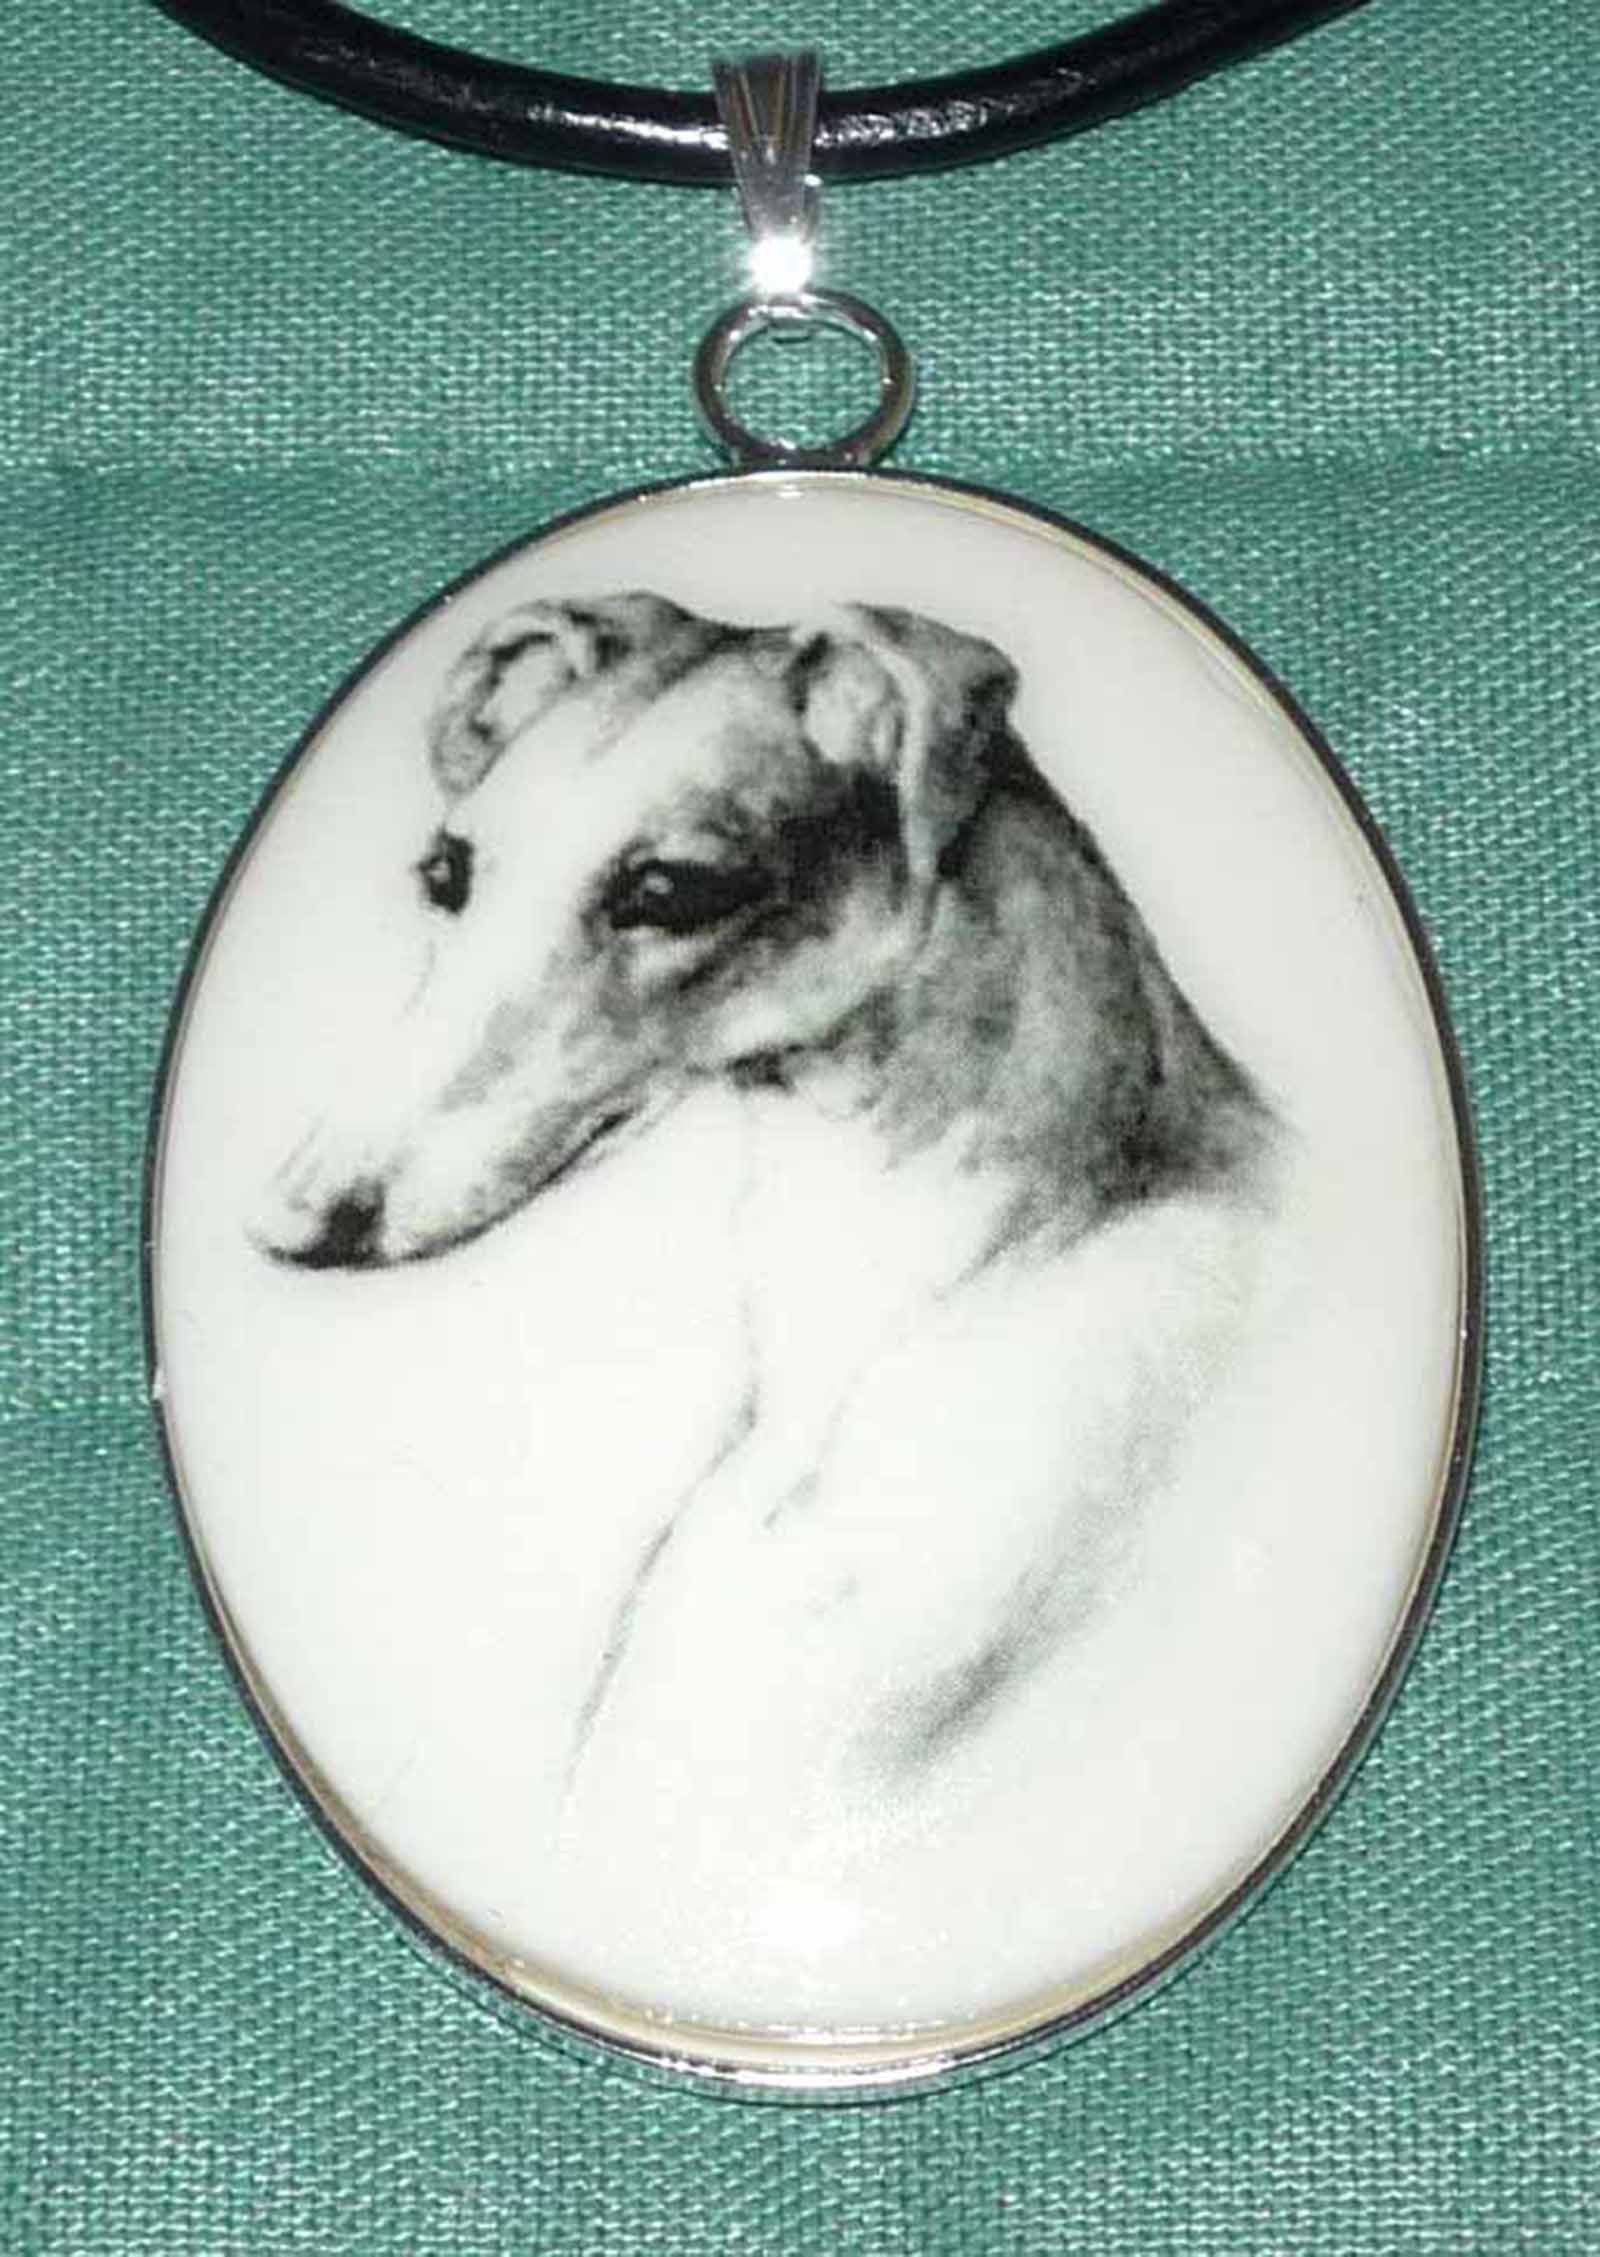 Hammered Bronze Collar Necklace with Running Greyhound or Whippet Dog